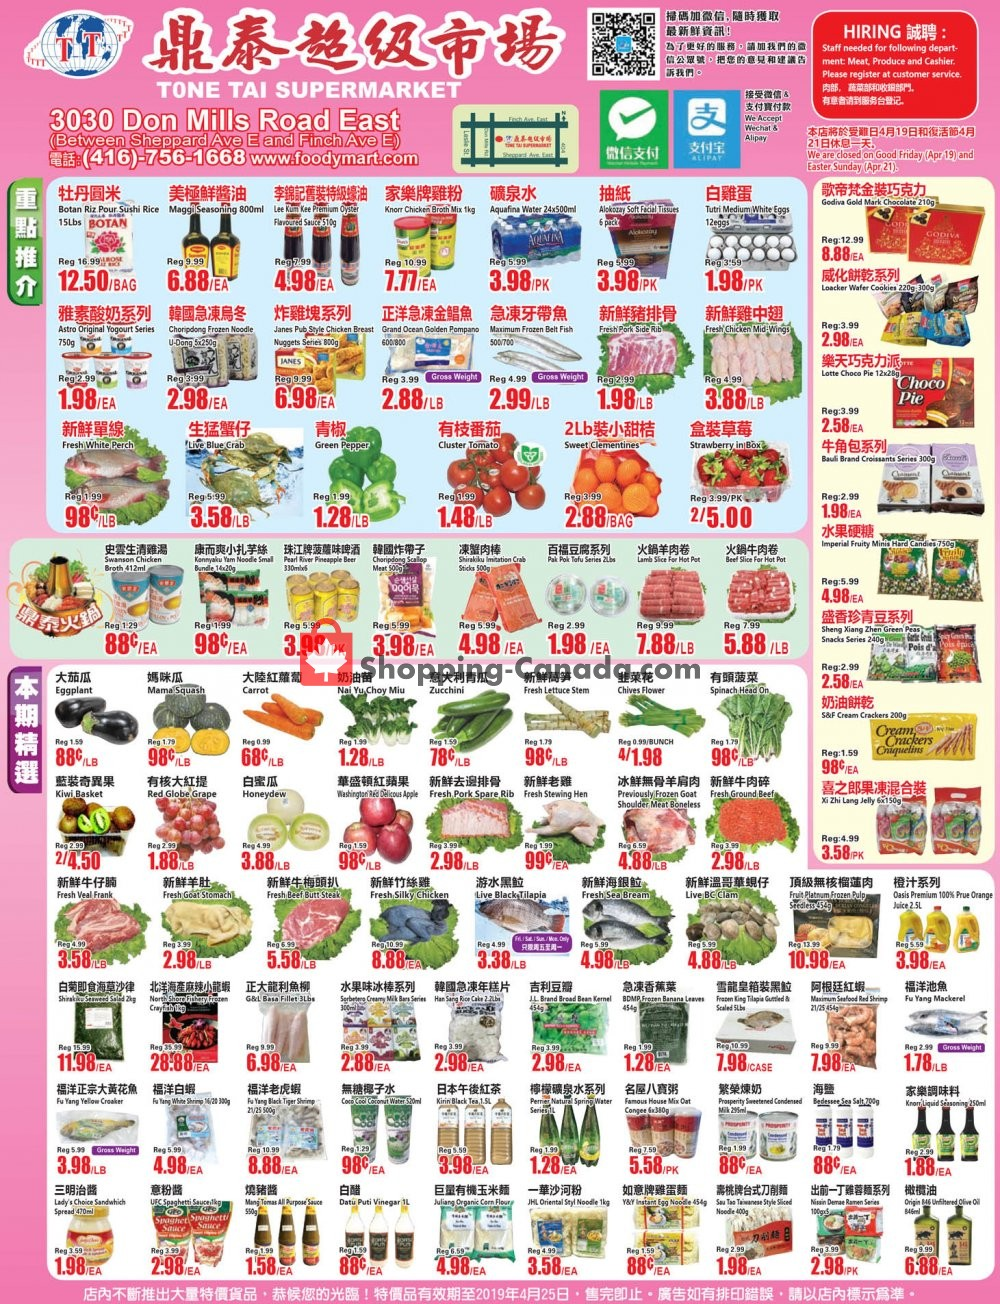 Flyer Tone Tai Supermarket Canada - from Friday April 19, 2019 to Thursday April 25, 2019